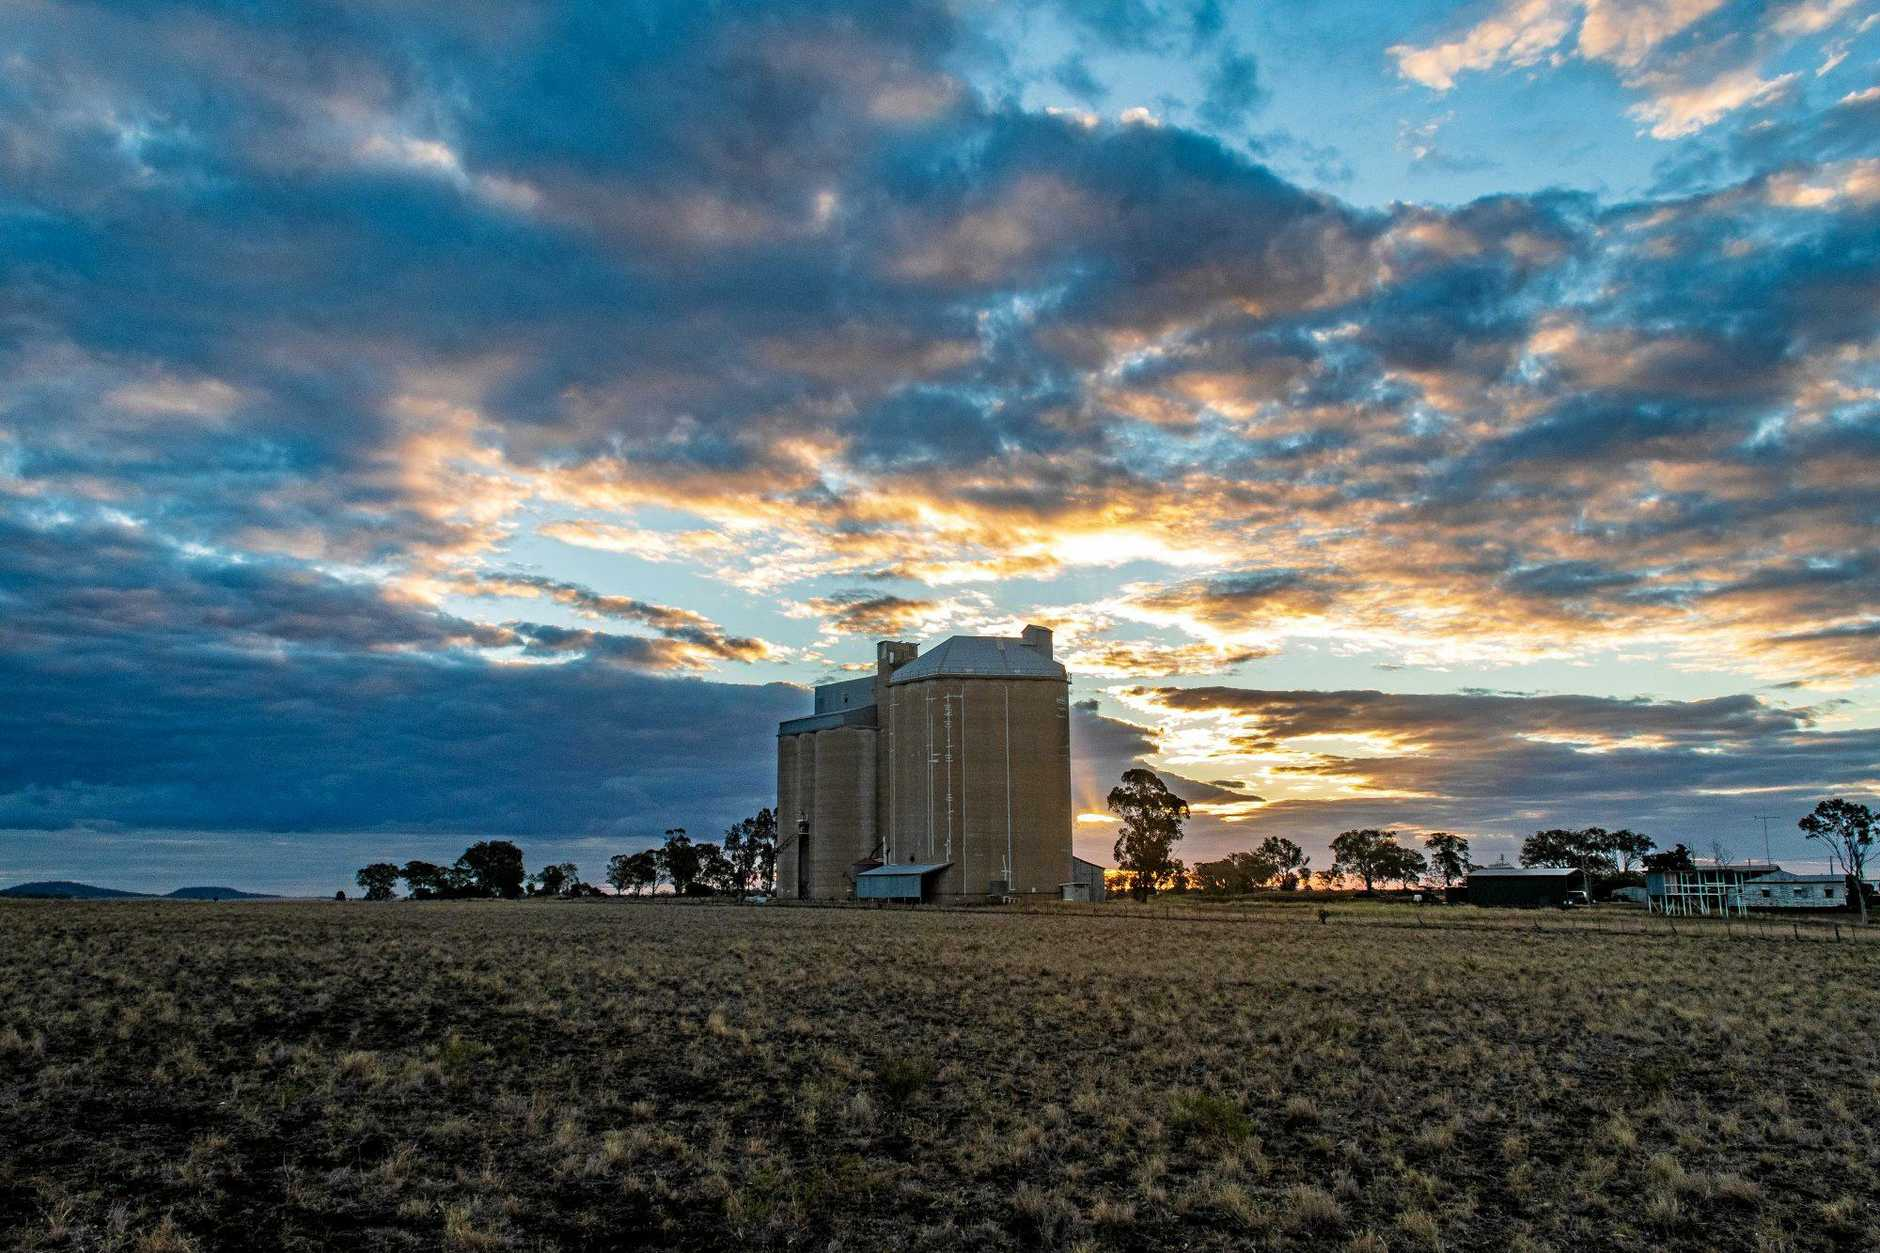 Brandon Long of Watchdog Photography took these photos from the Darling Downs region.